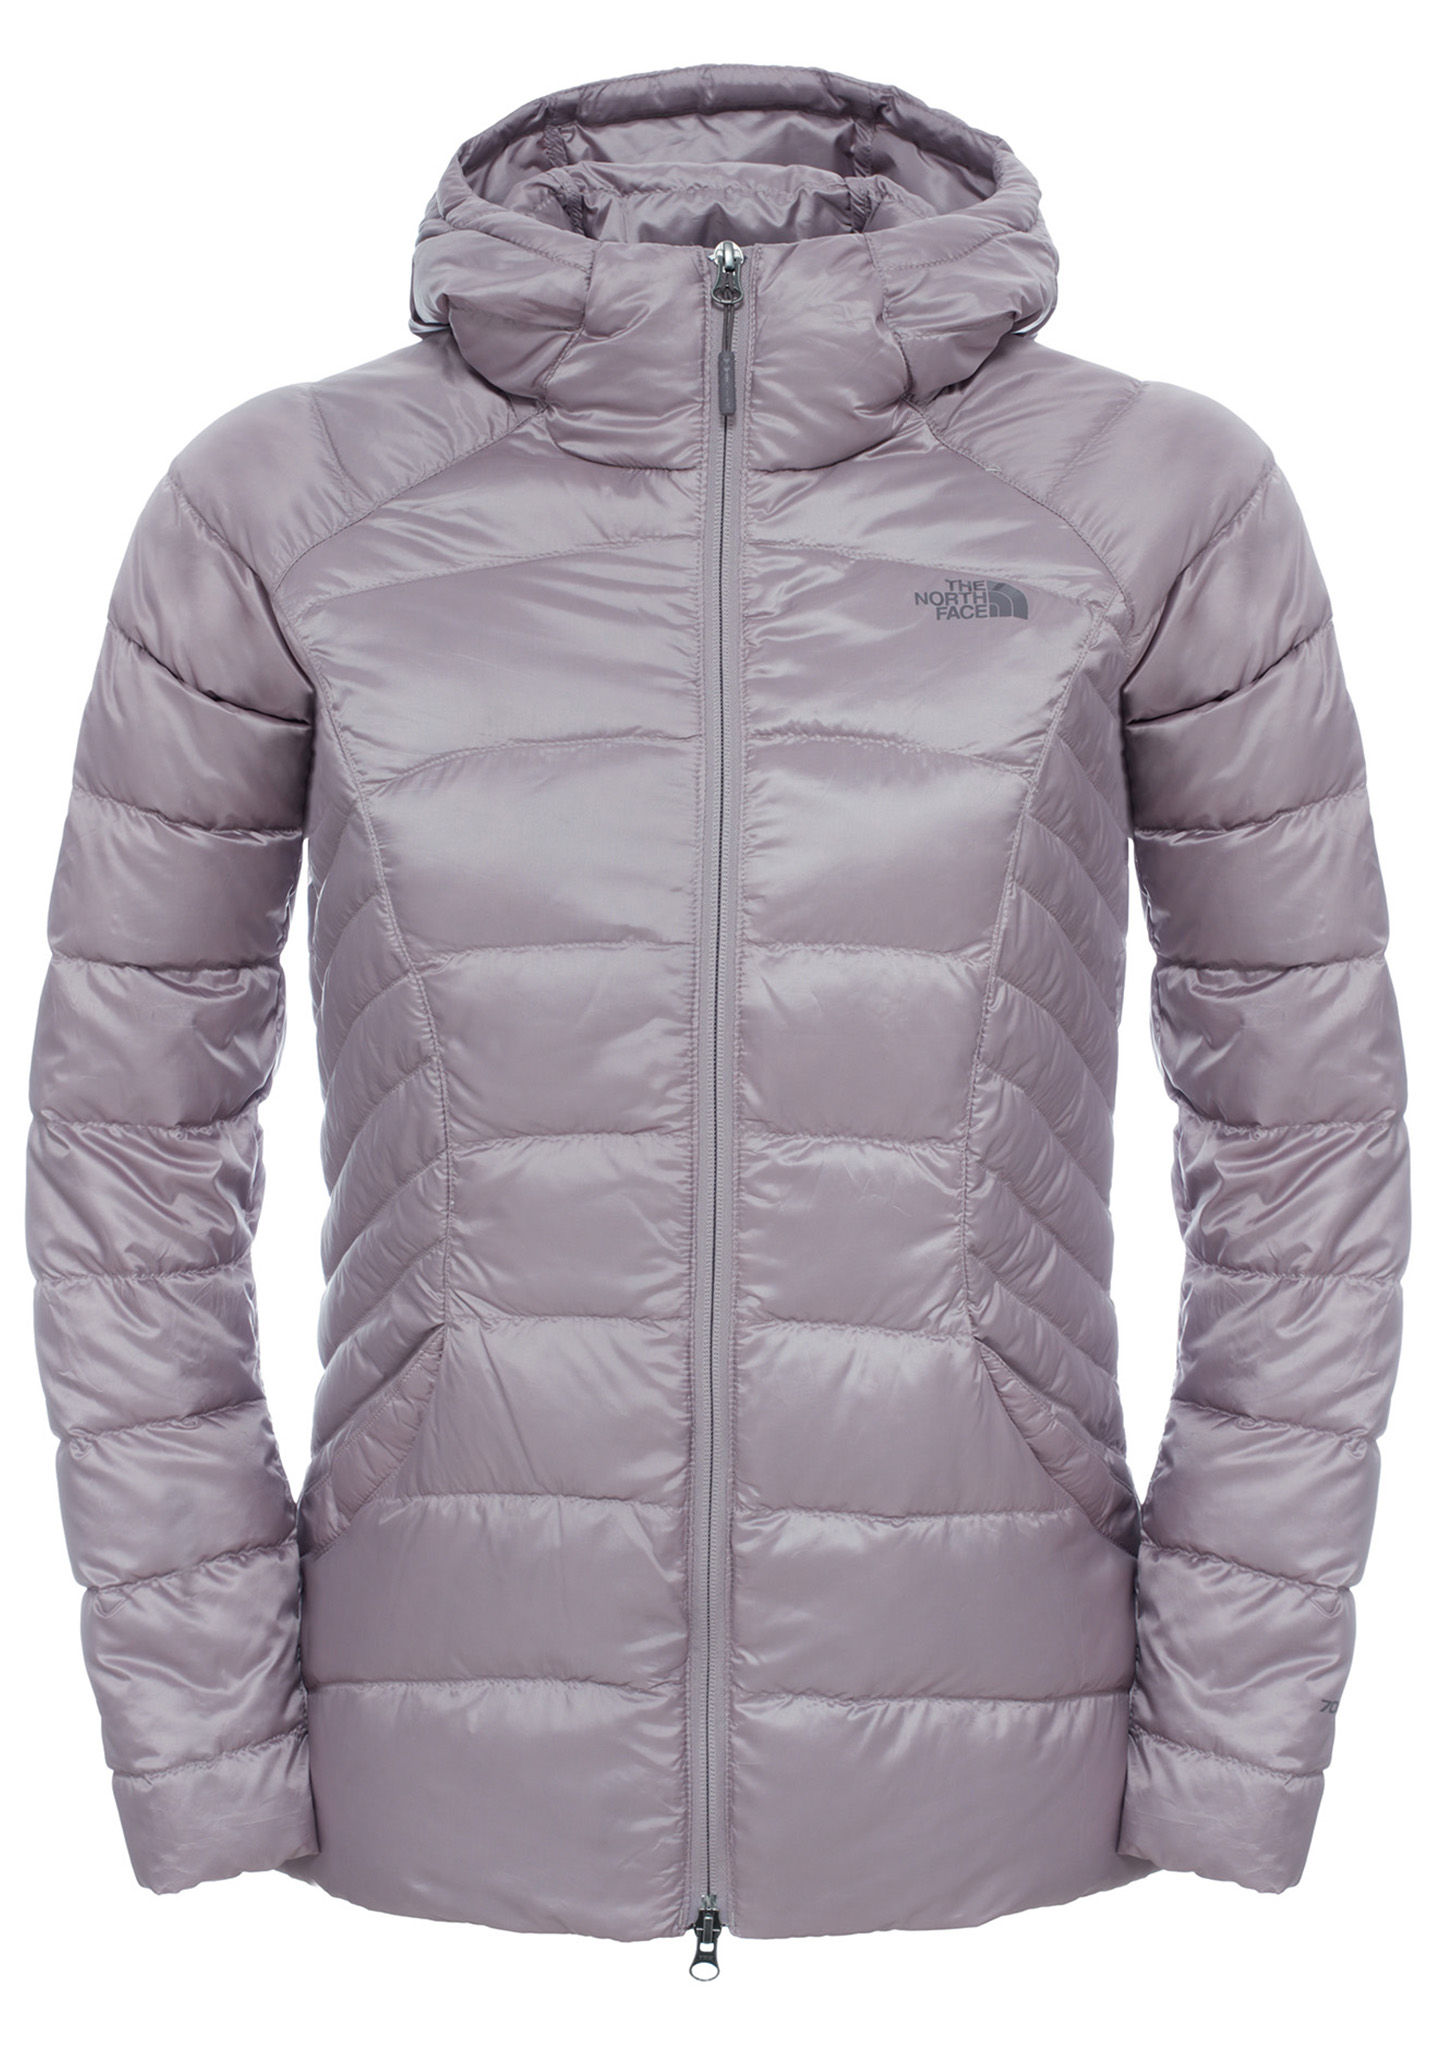 8f9aaf1a984 the-north-face-tonnerro-veste-fonctionnelle-femmes-gris.jpg